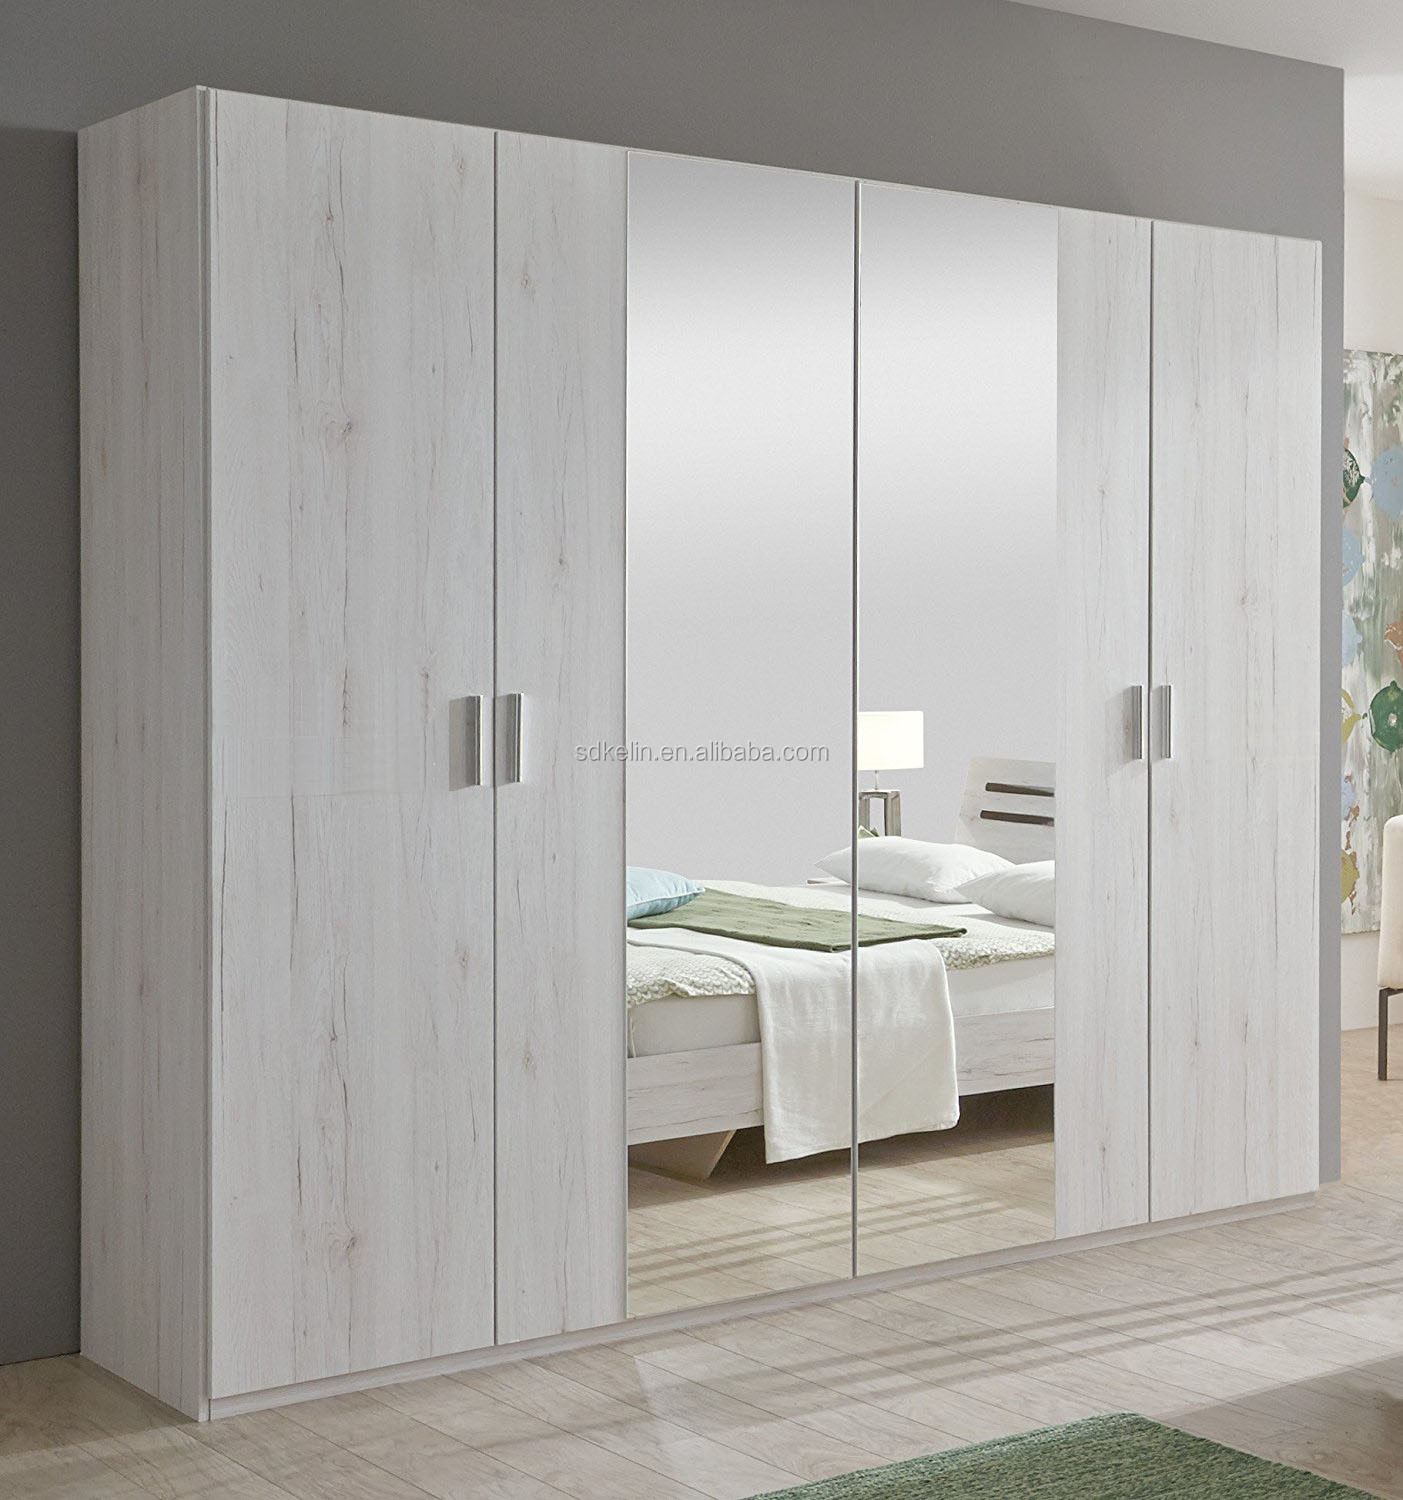 Euro styl white color melamine MDF wooden wardrobe with mirror